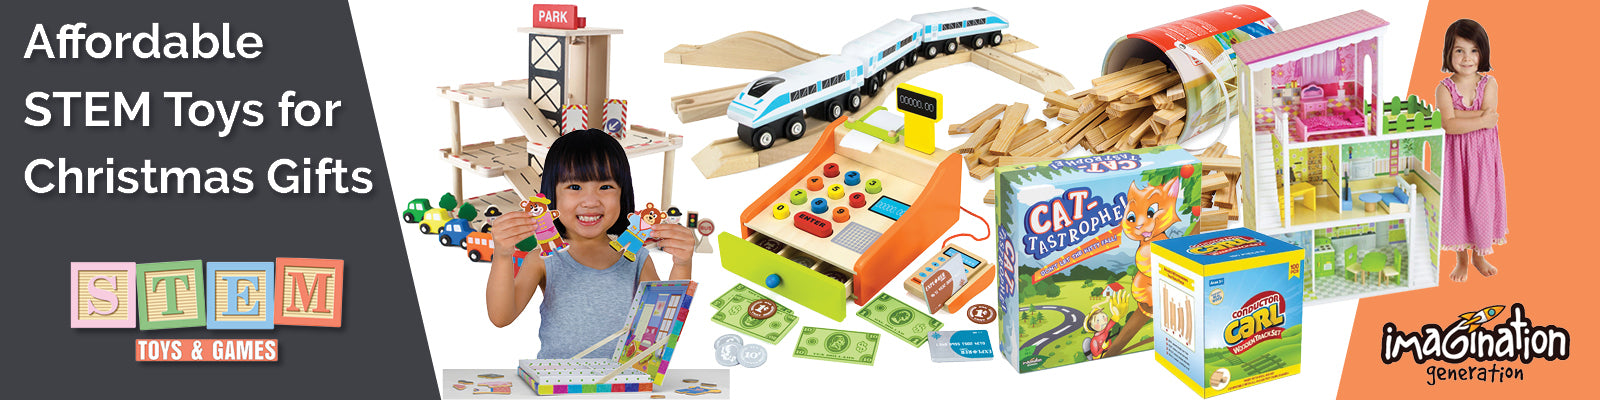 imagination-generation-affordable-STEM-toys-banner